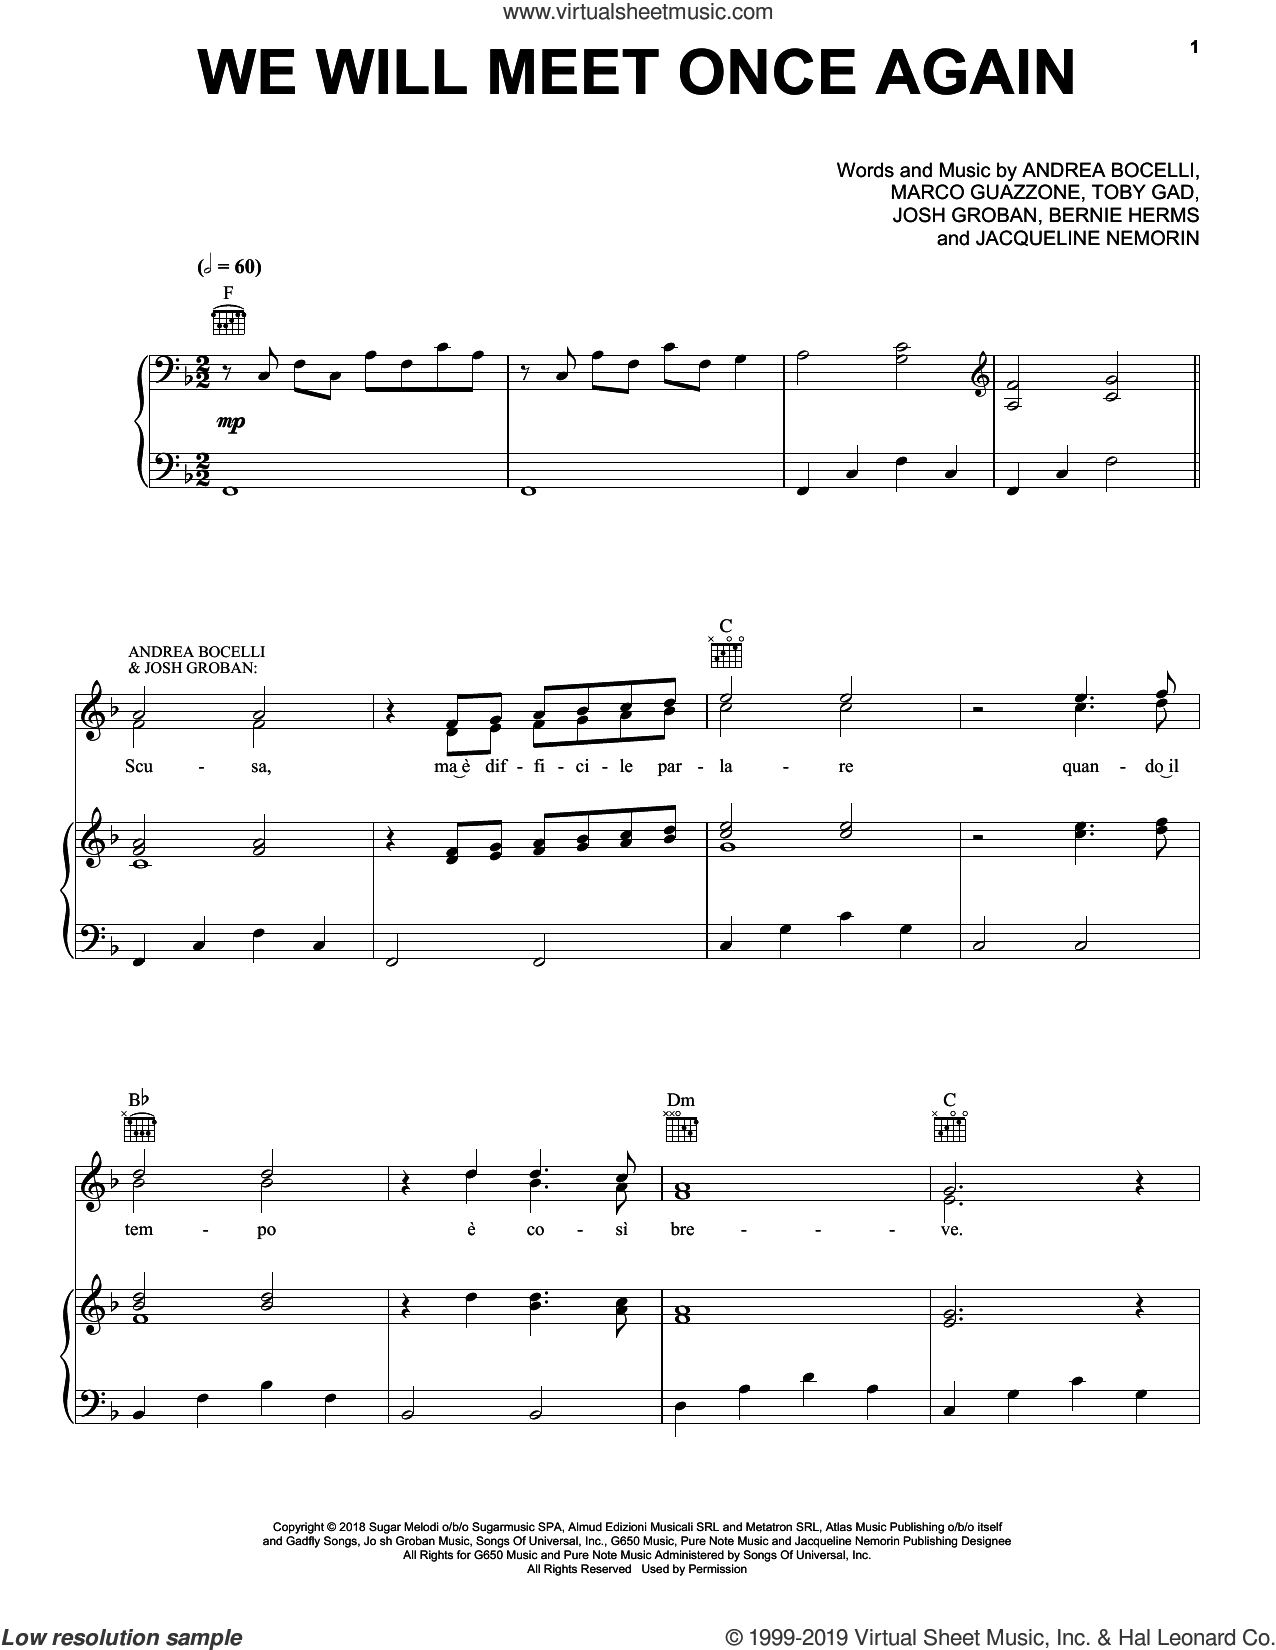 We Will Meet Once Again (feat. Josh Groban) sheet music for voice, piano or guitar by Andrea Bocelli, Bernie Herms, Jacqueline Nemorin, Josh Groban, Marco Guazzone and Toby Gad, intermediate skill level